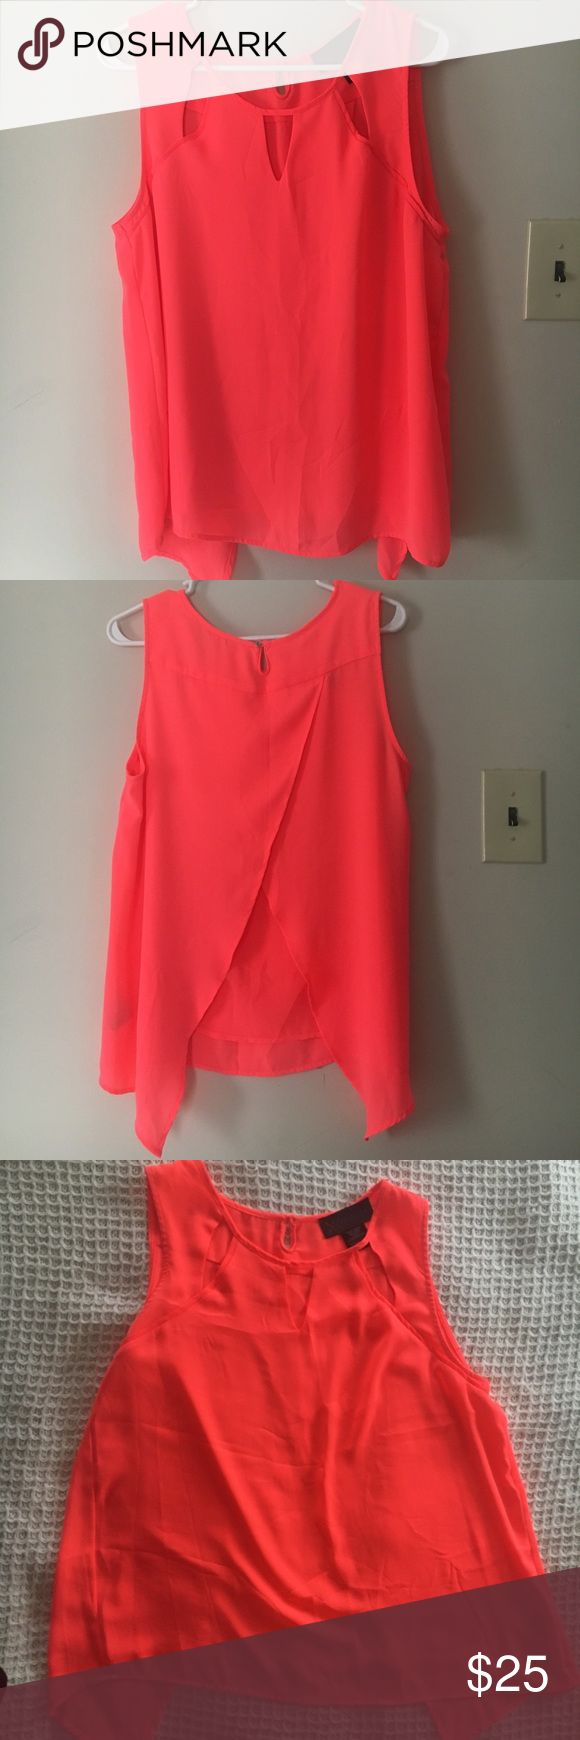 Coral top kardashian kollection Like New- sleeveless flowy sheer top -such a pretty bright coral color lovely for spring! Kardashian Kollection Tops Tank Tops